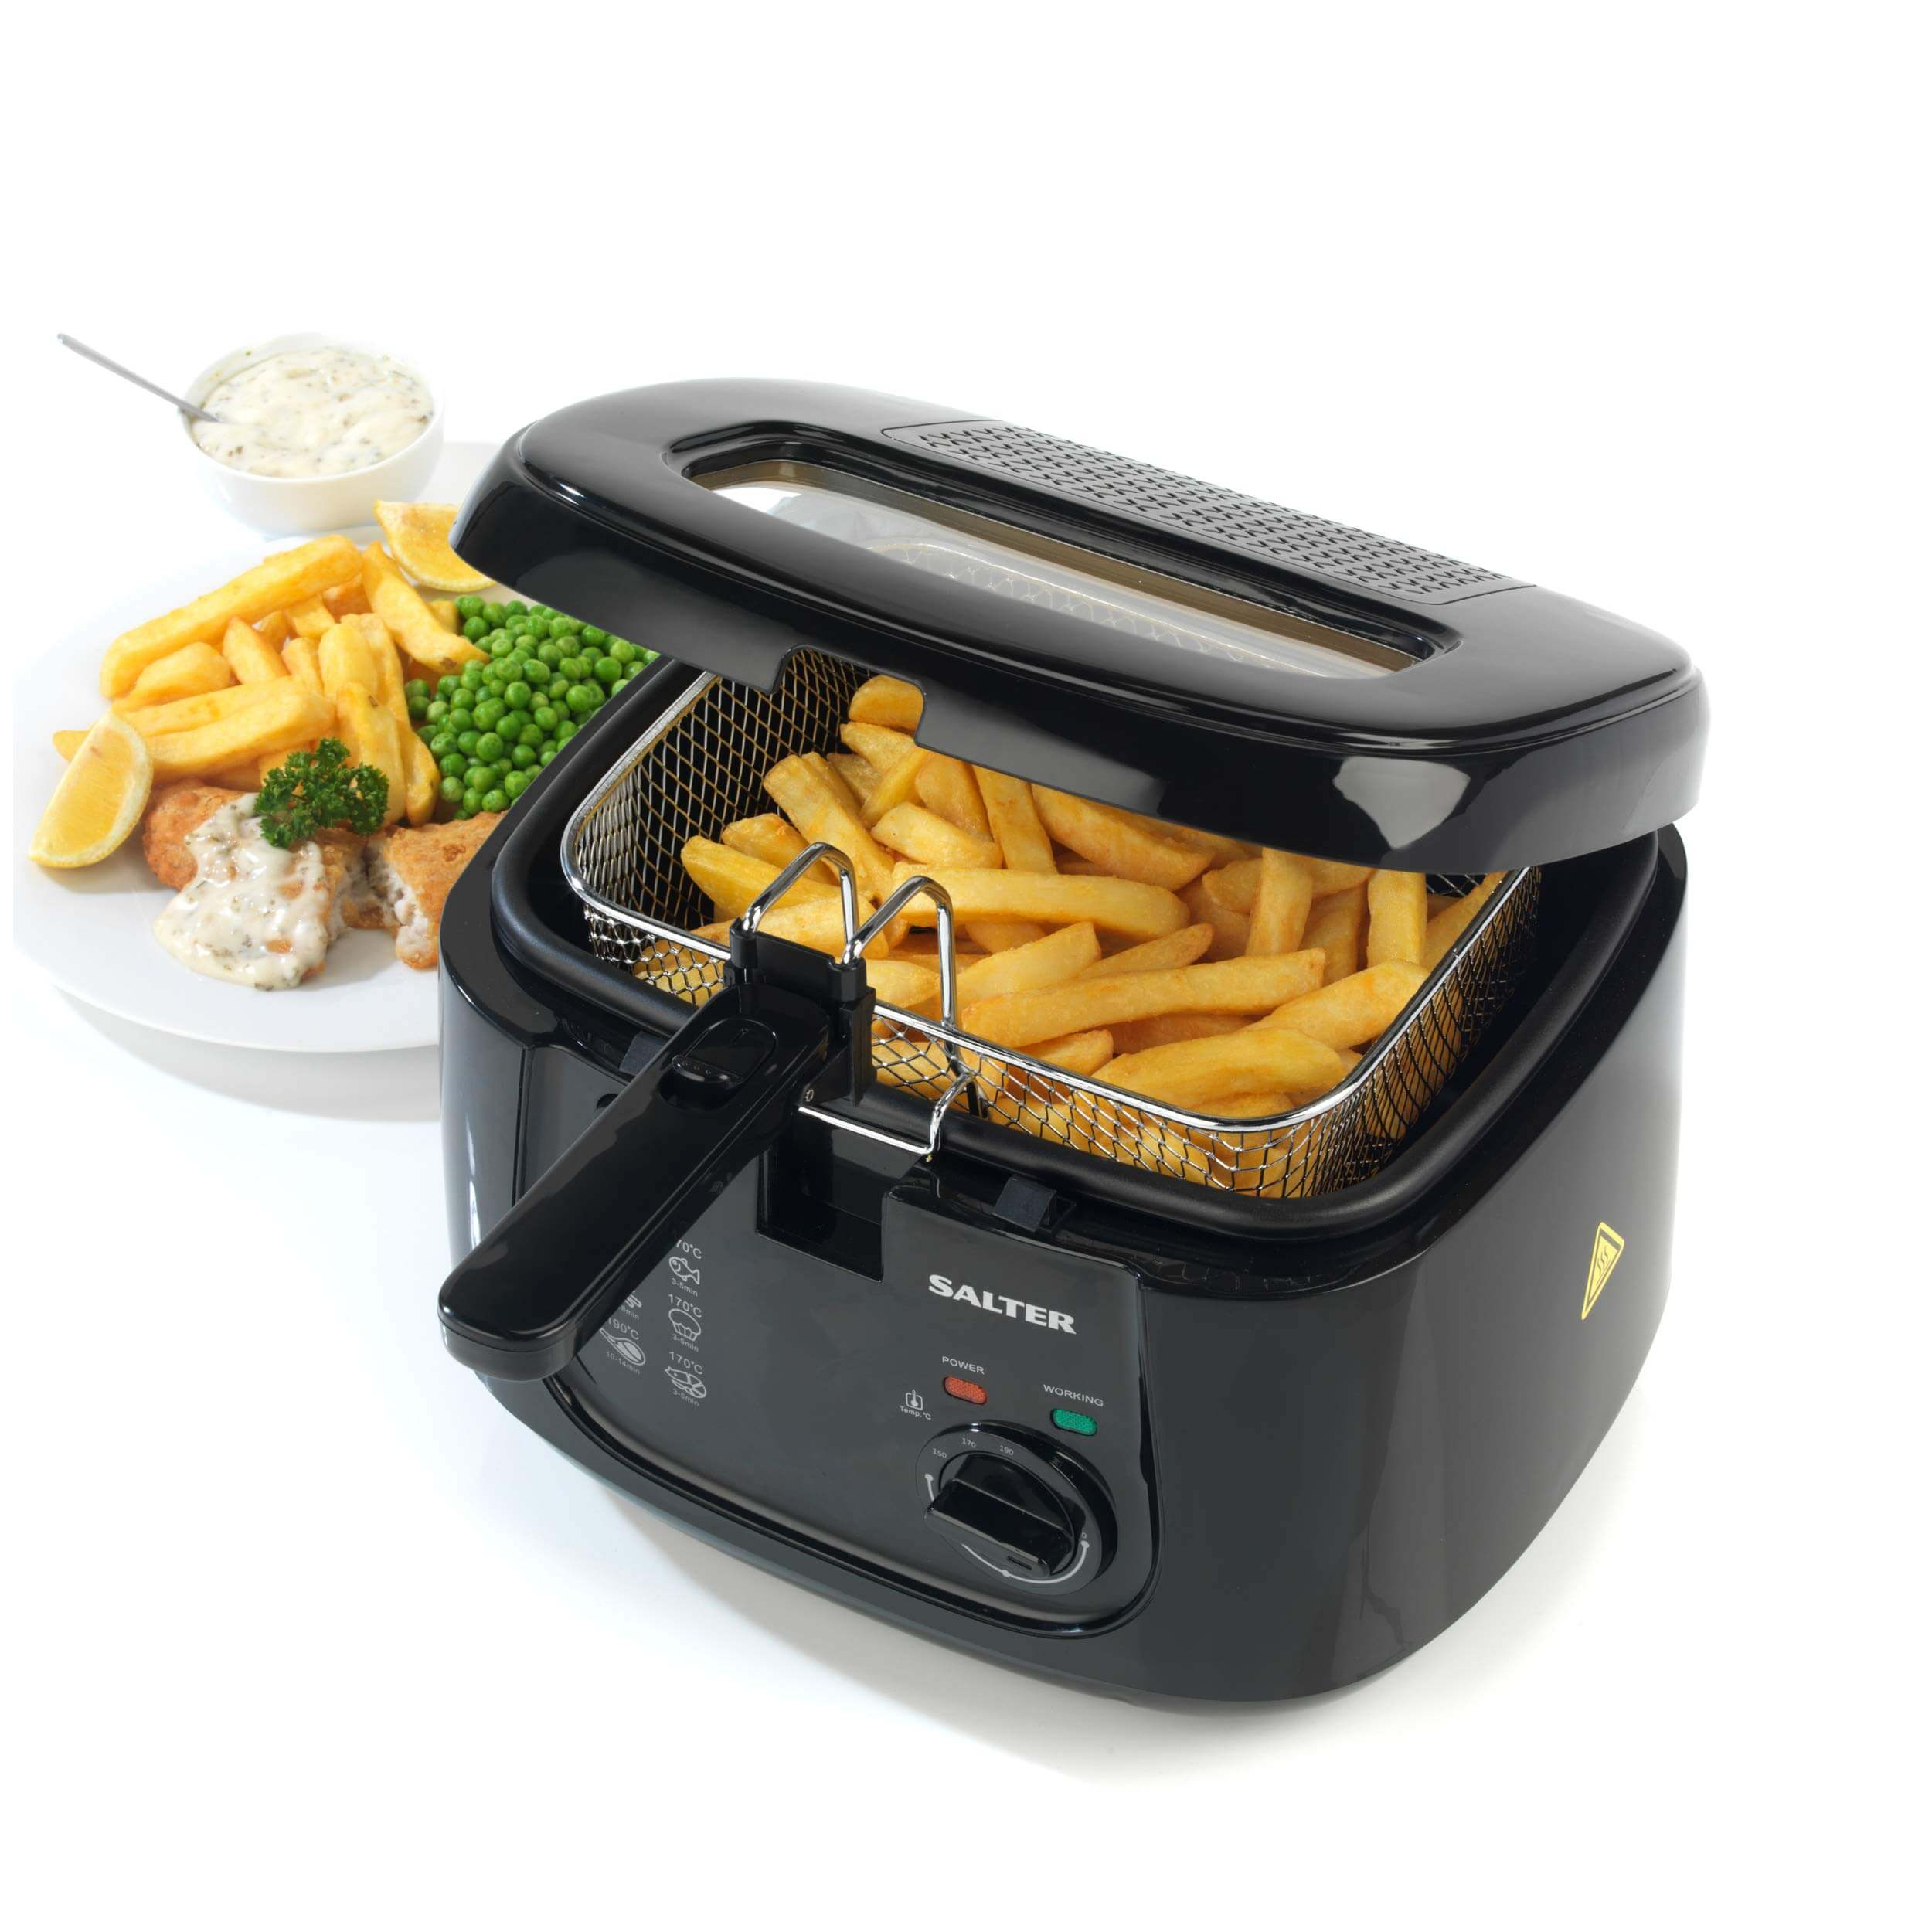 BEST SMALL KITCHEN APPLIANCES YOUR MUSH HAVE. FRYER